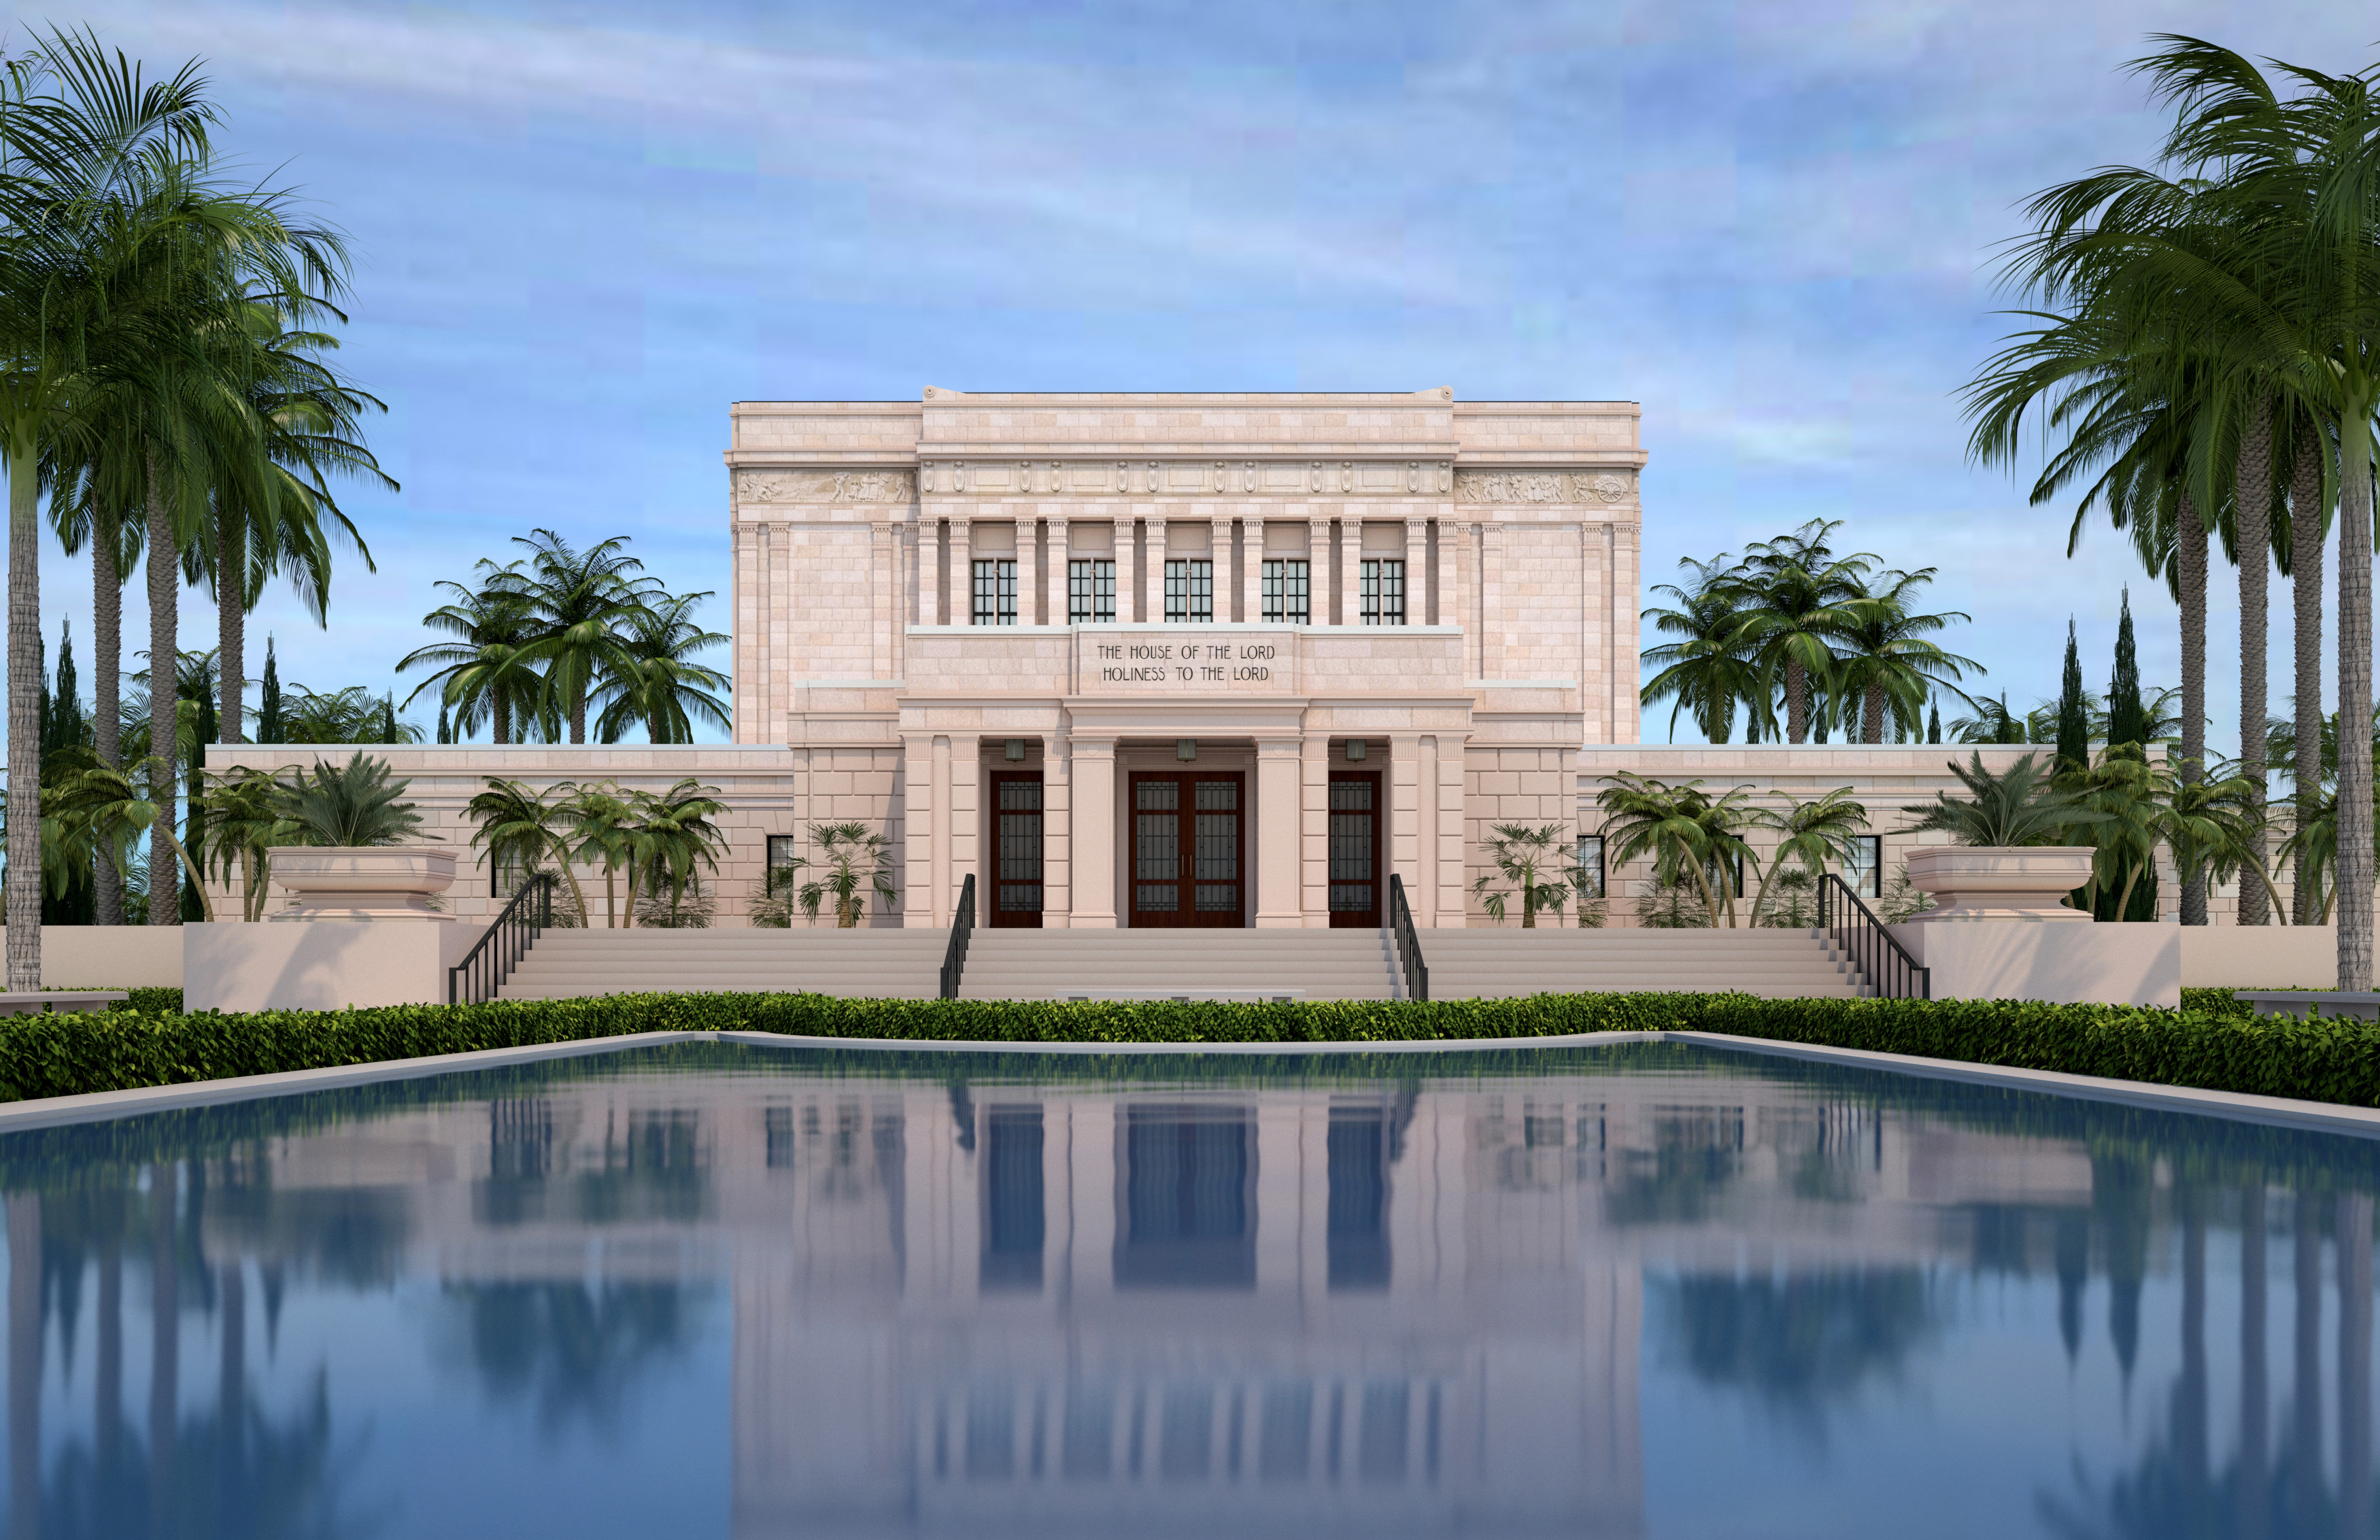 Rendering of a garden on the grounds of the Mesa Arizona Temple.